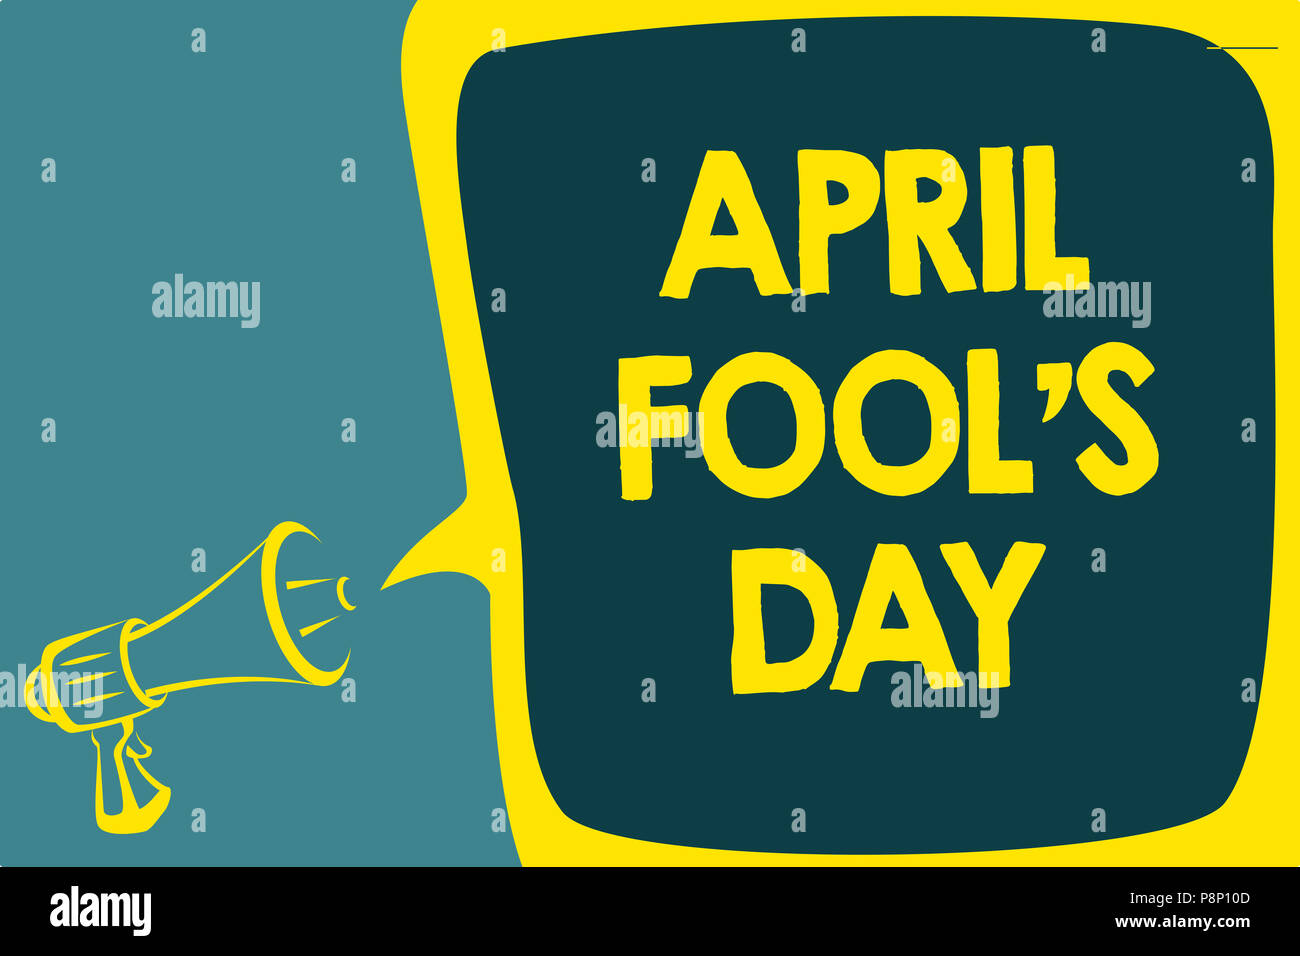 Conceptual hand writing showing April Fool s is Day. Business photo showcasing Practical jokes humor pranks Celebration funny foolish Script artwork s - Stock Image